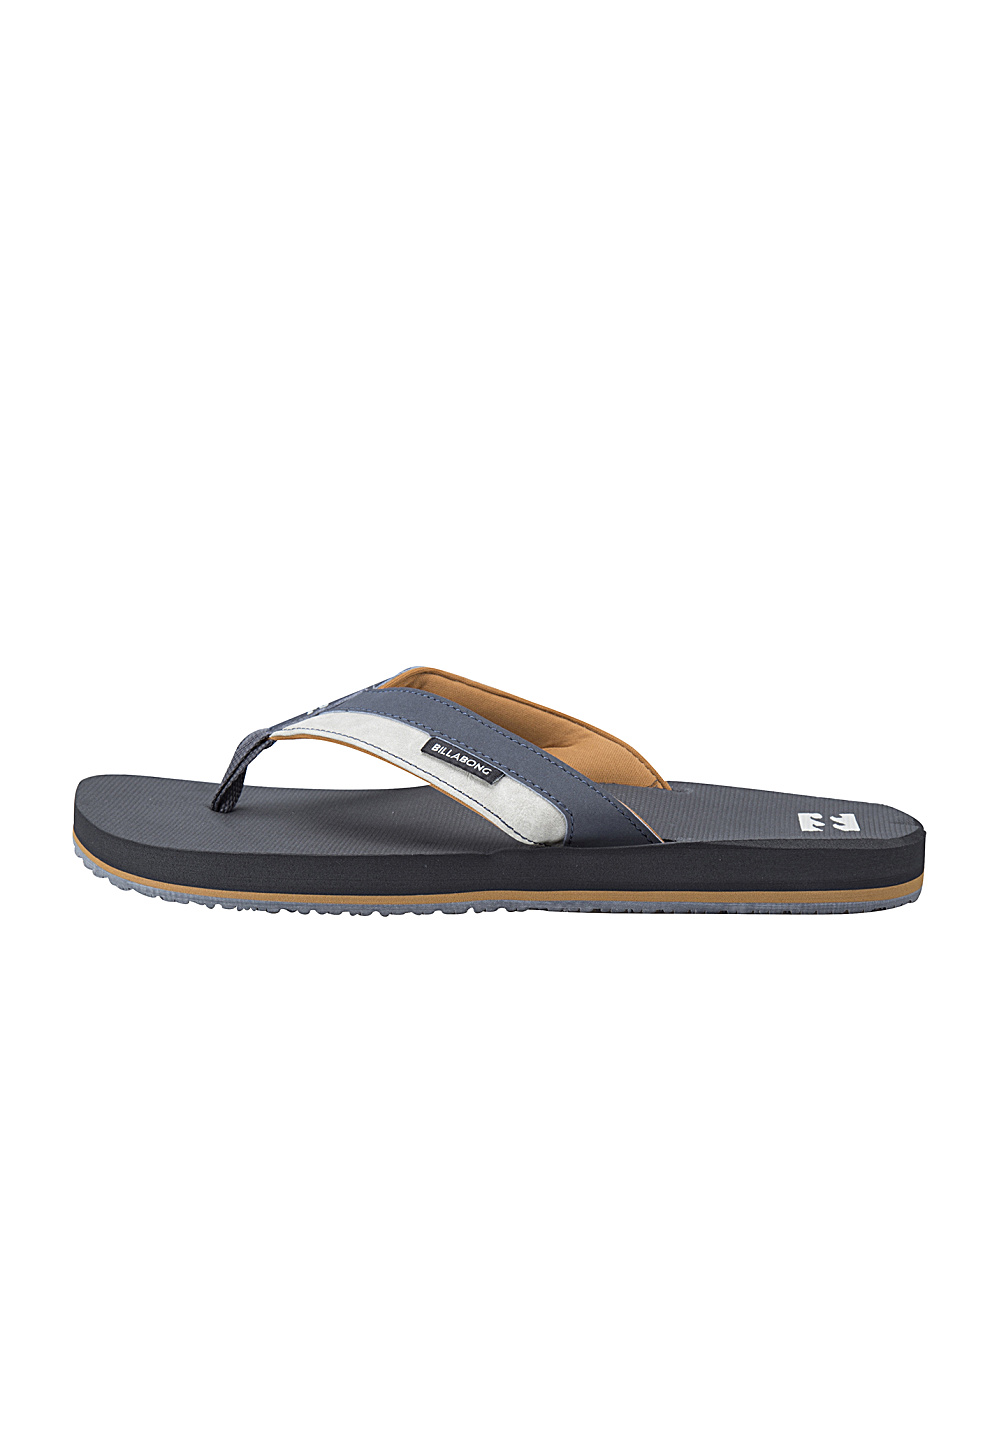 BILLABONG All Day Impact - Tongs pour Homme - Gris